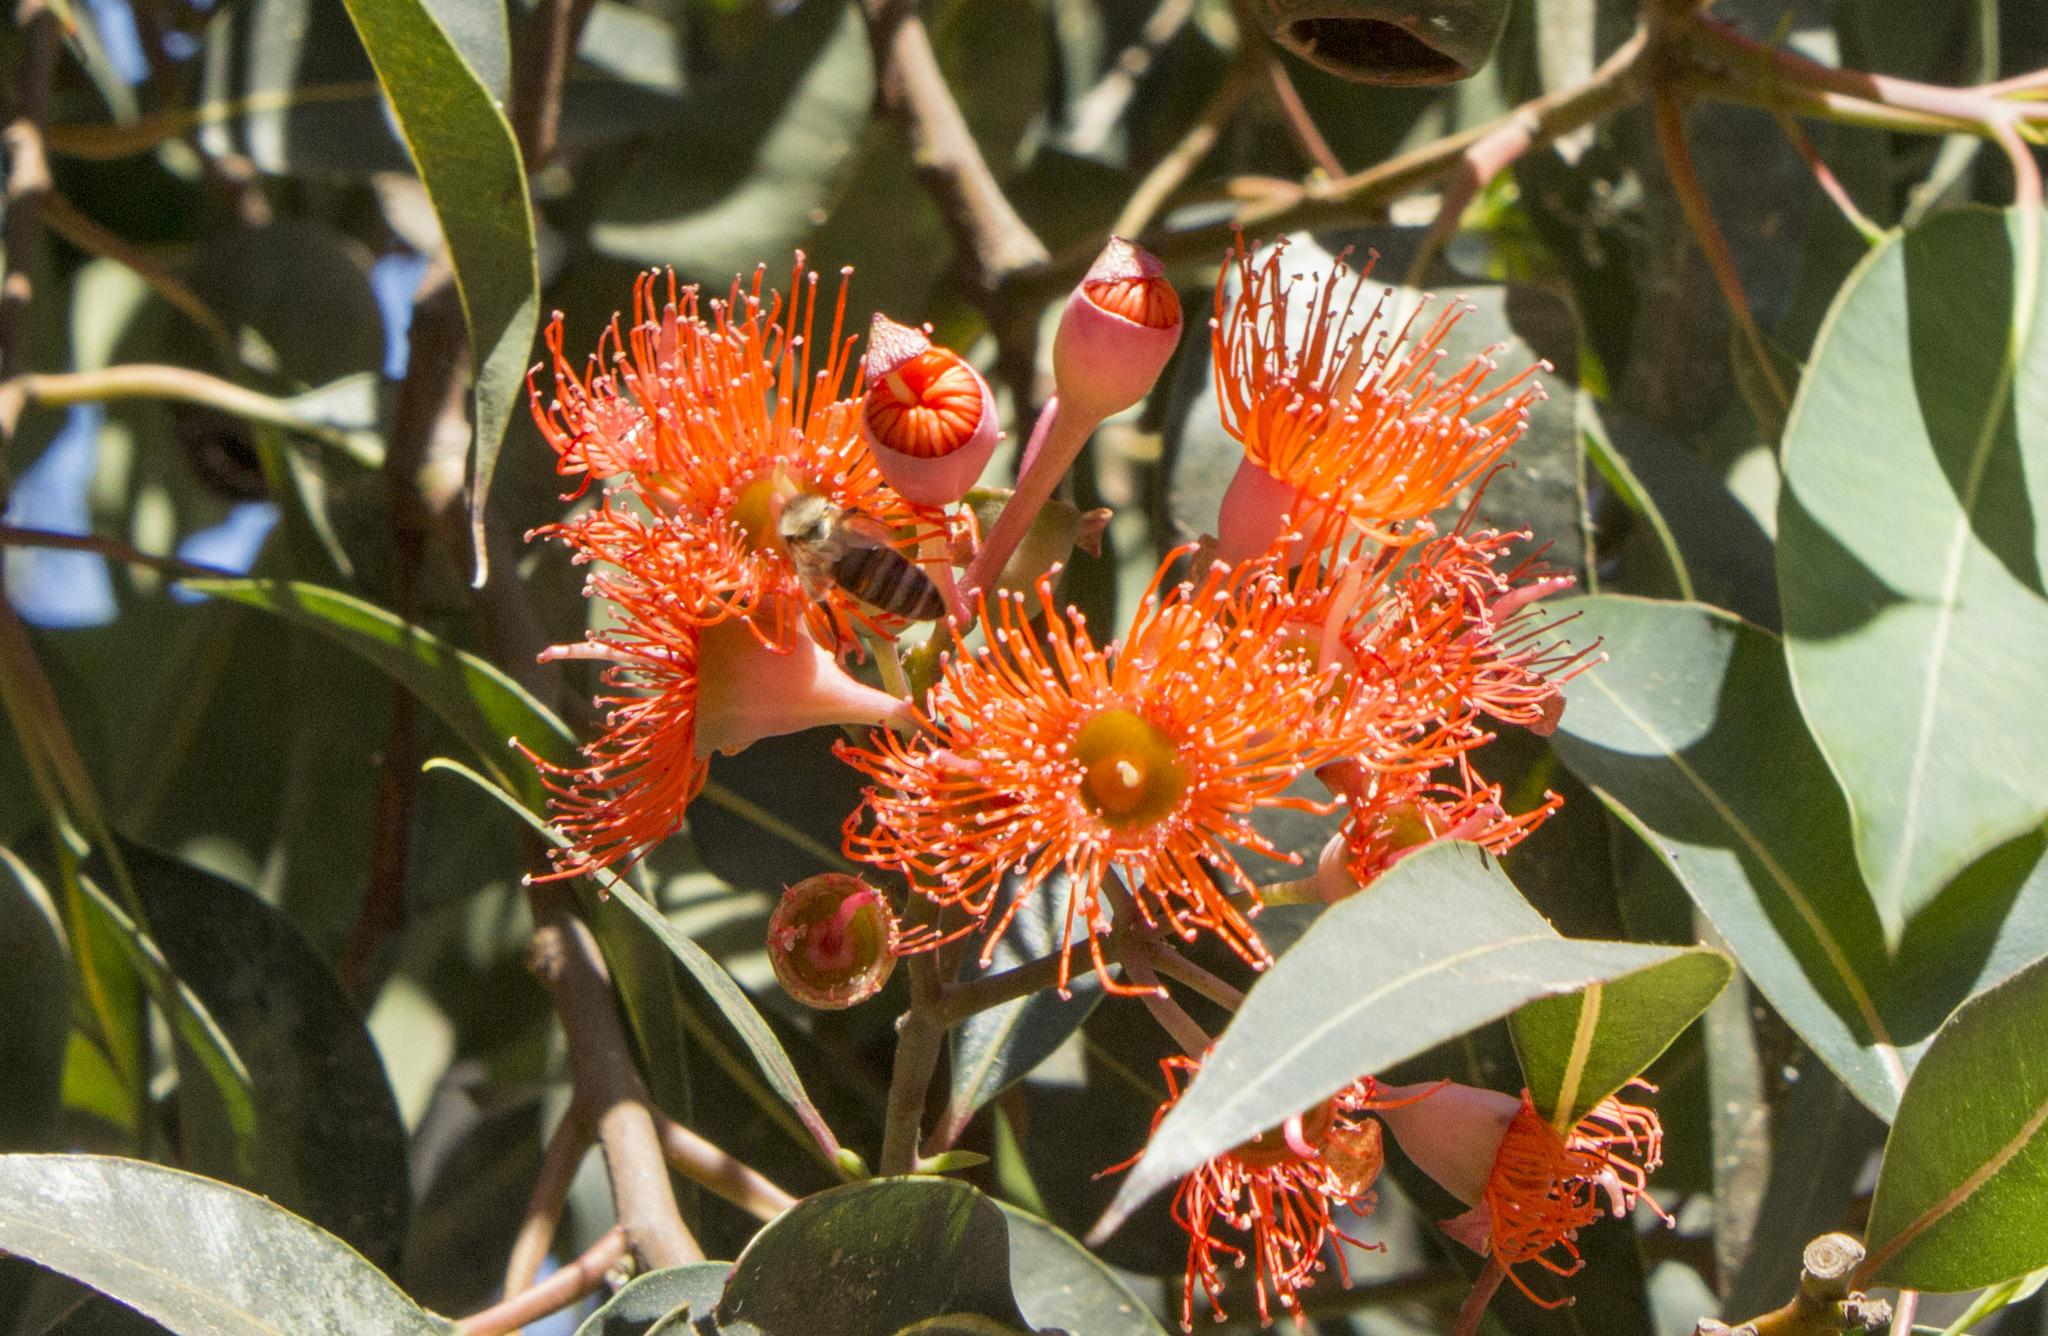 Redflower Gum Tree blooms by steve house